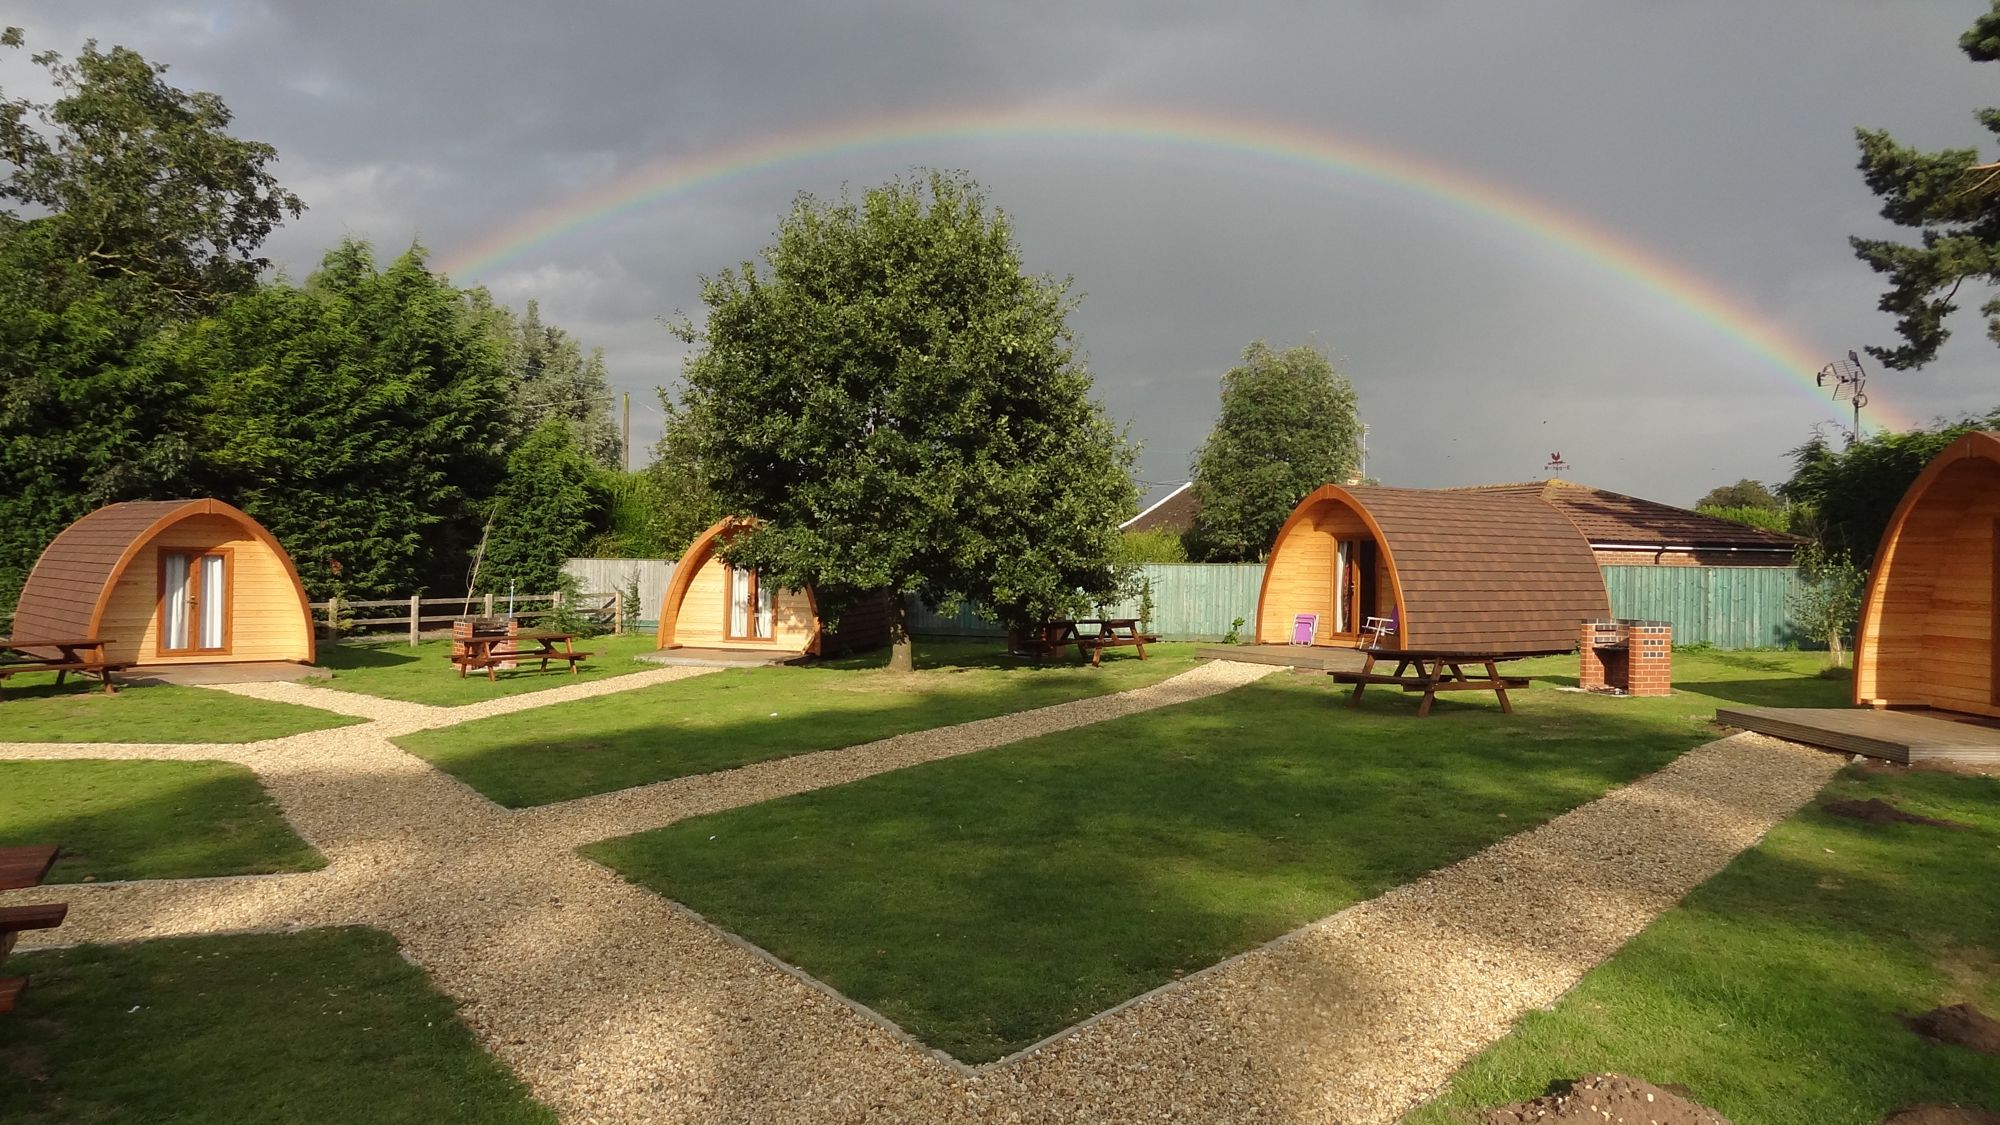 Campsites in King's Lynn – Cool Camping